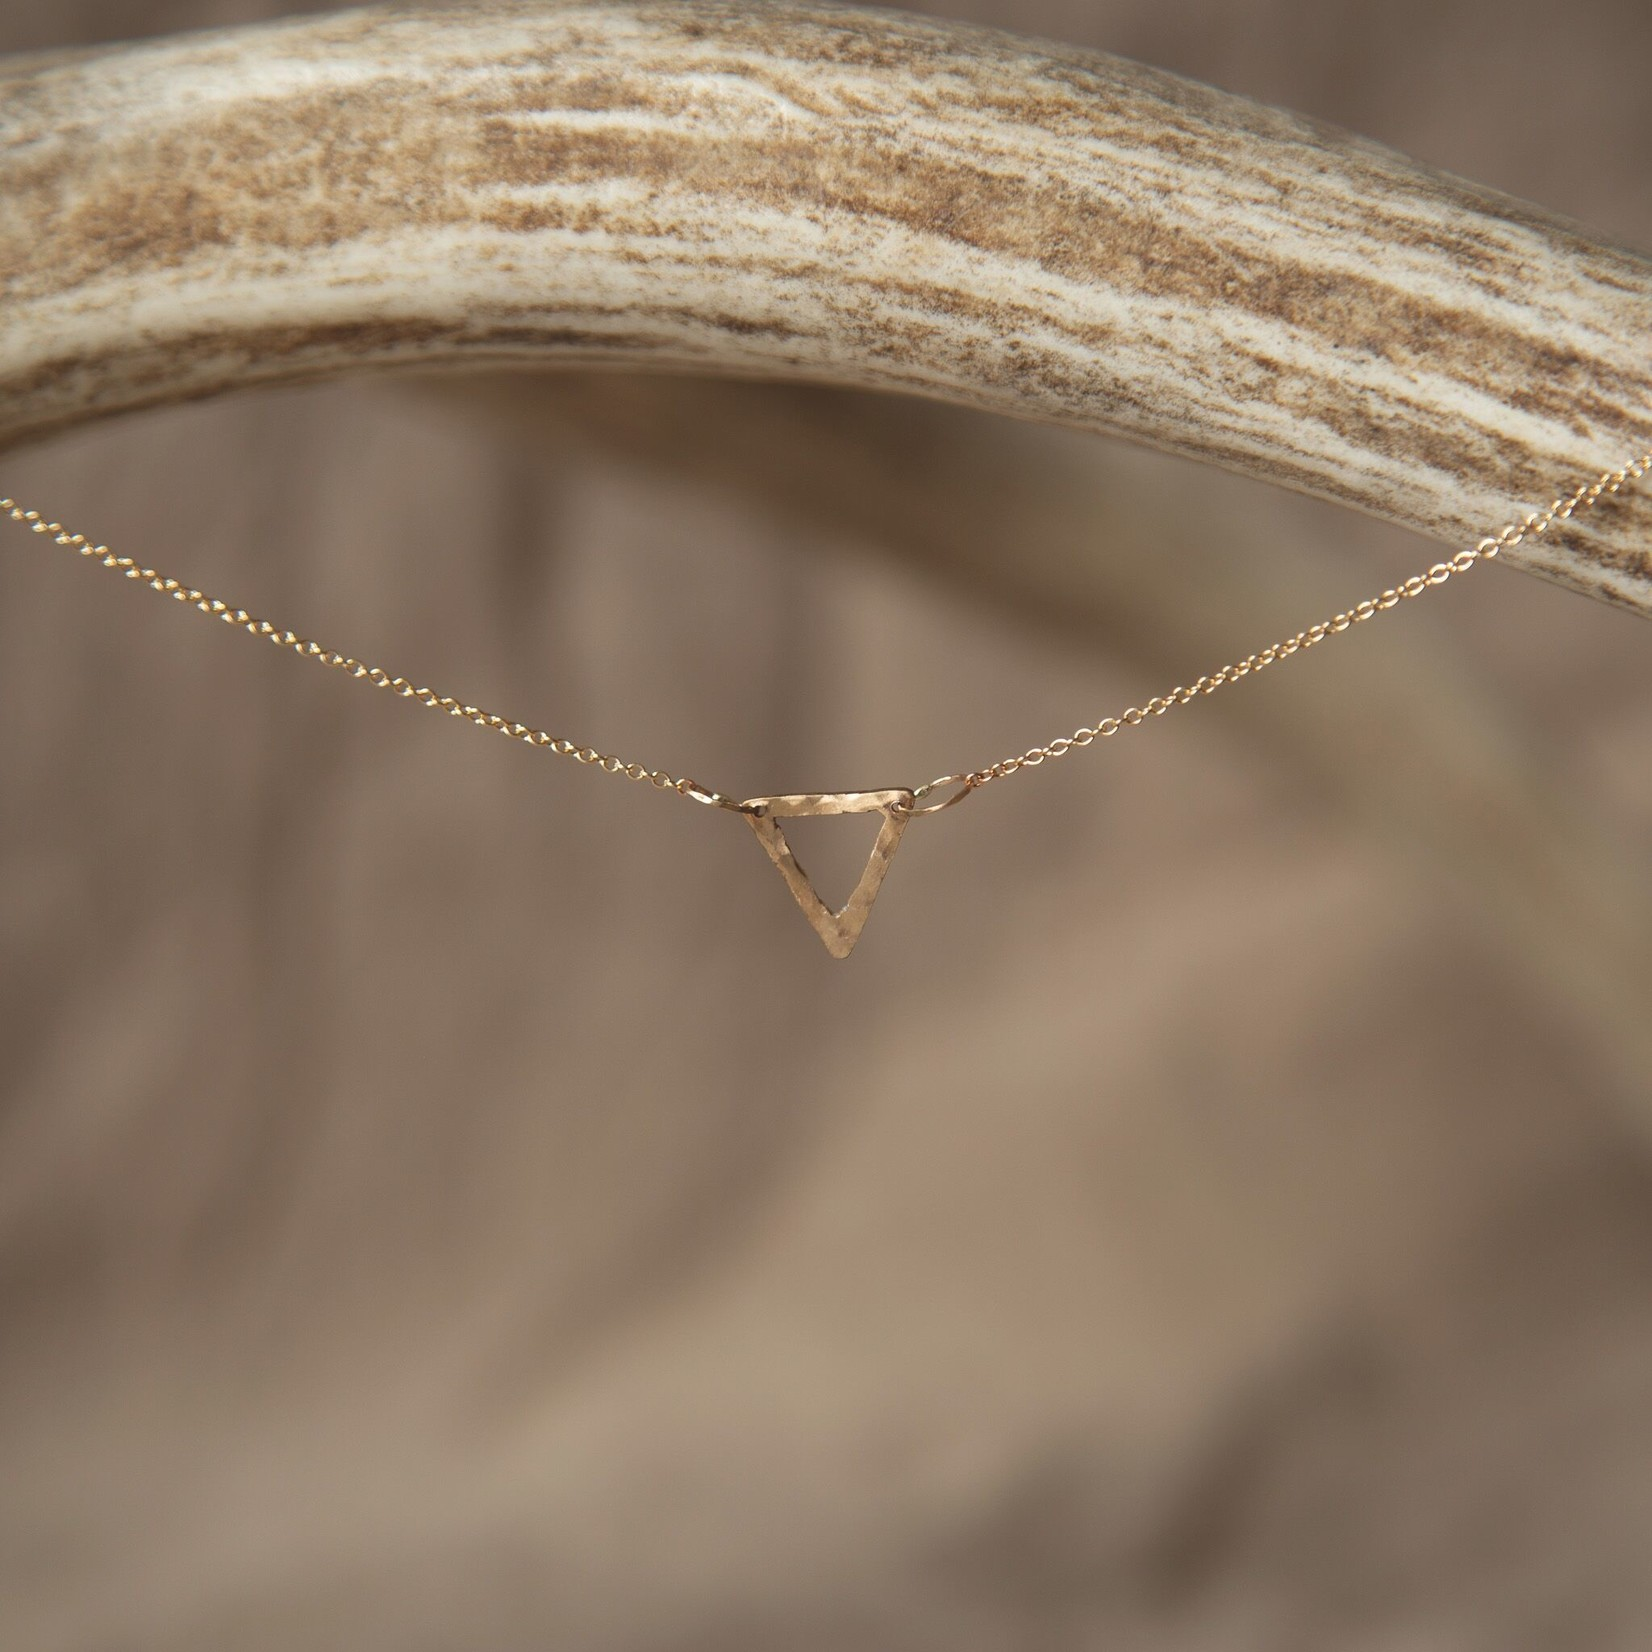 Lonewolf Collective Equilateral Lonewolf Collective Equilateral Necklace (14k Gold Fill)